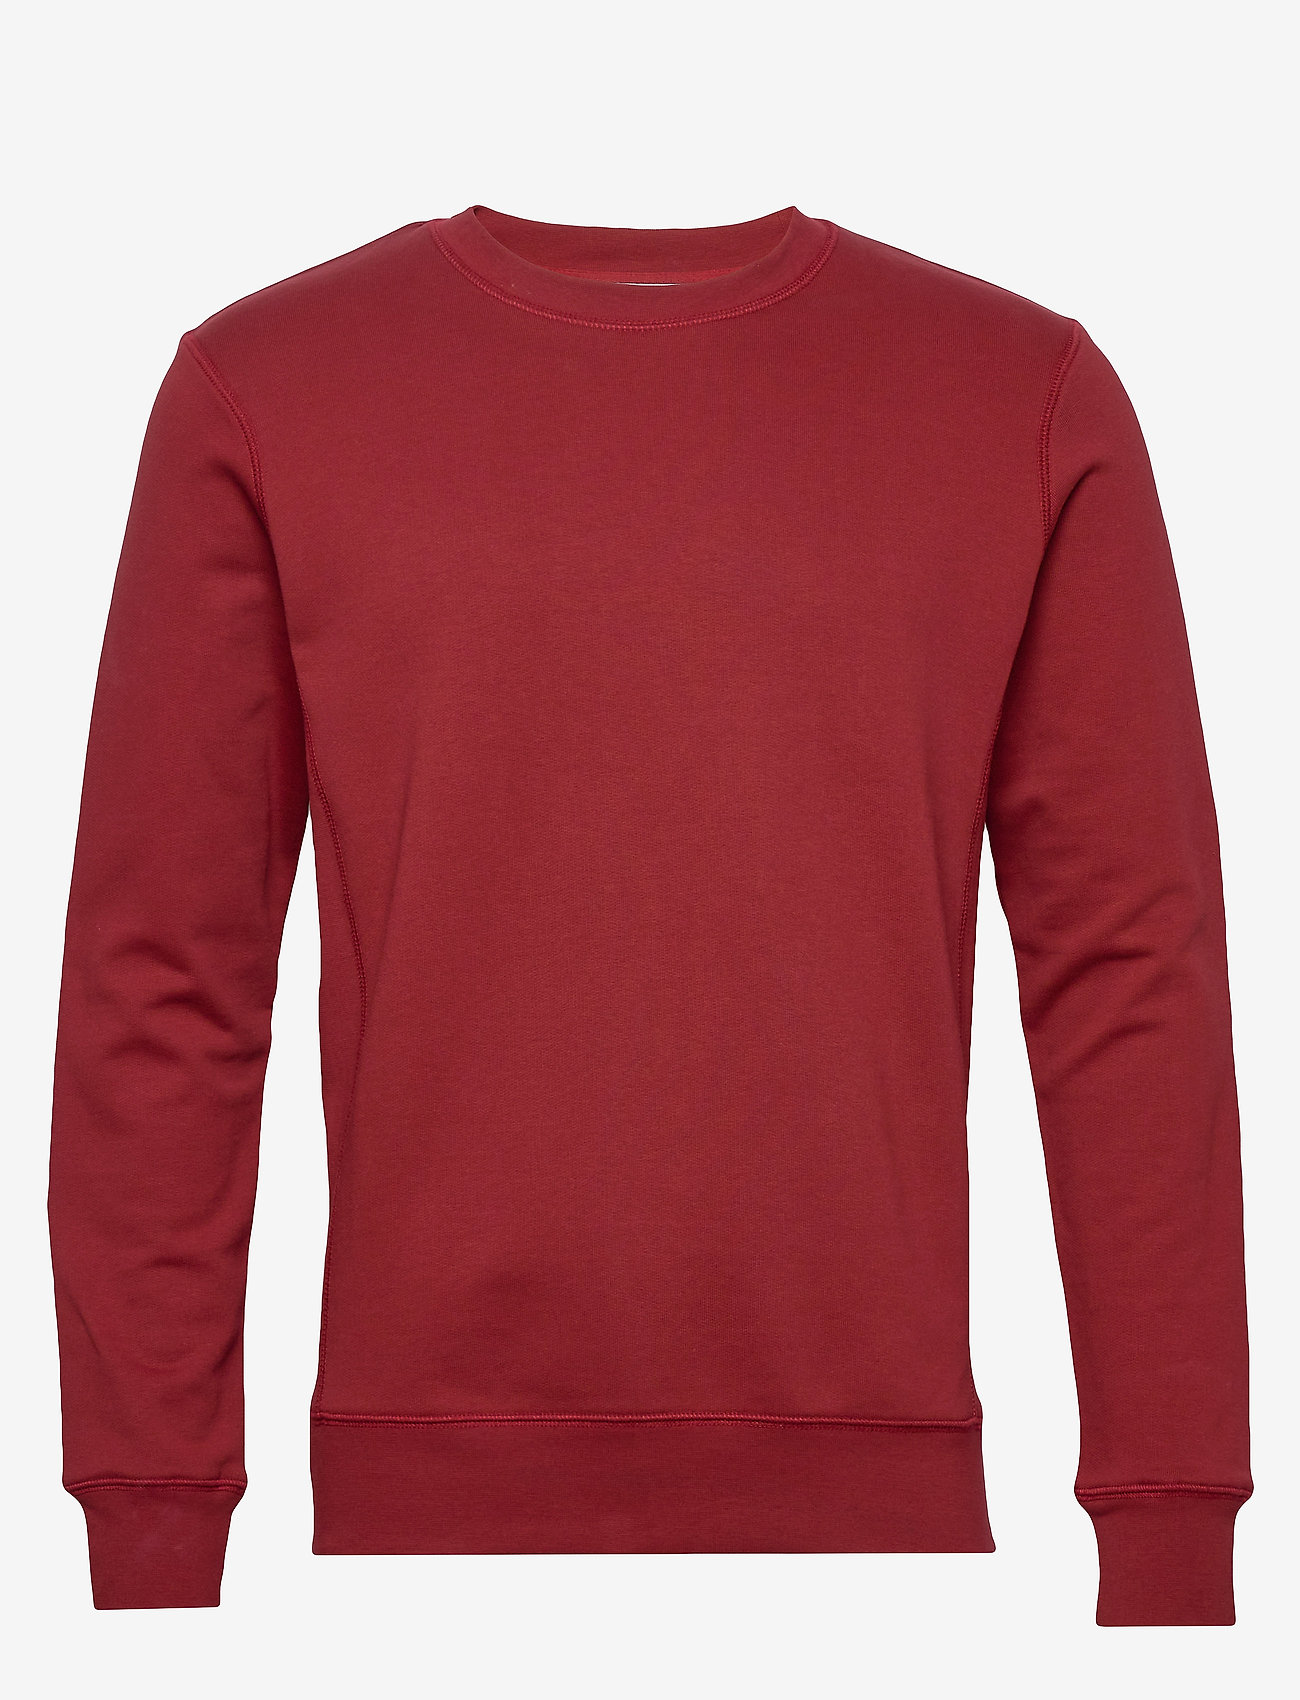 By Garment Makers The Organic Sweatshirt - Sweatshirts MERLOT - Menn Klær